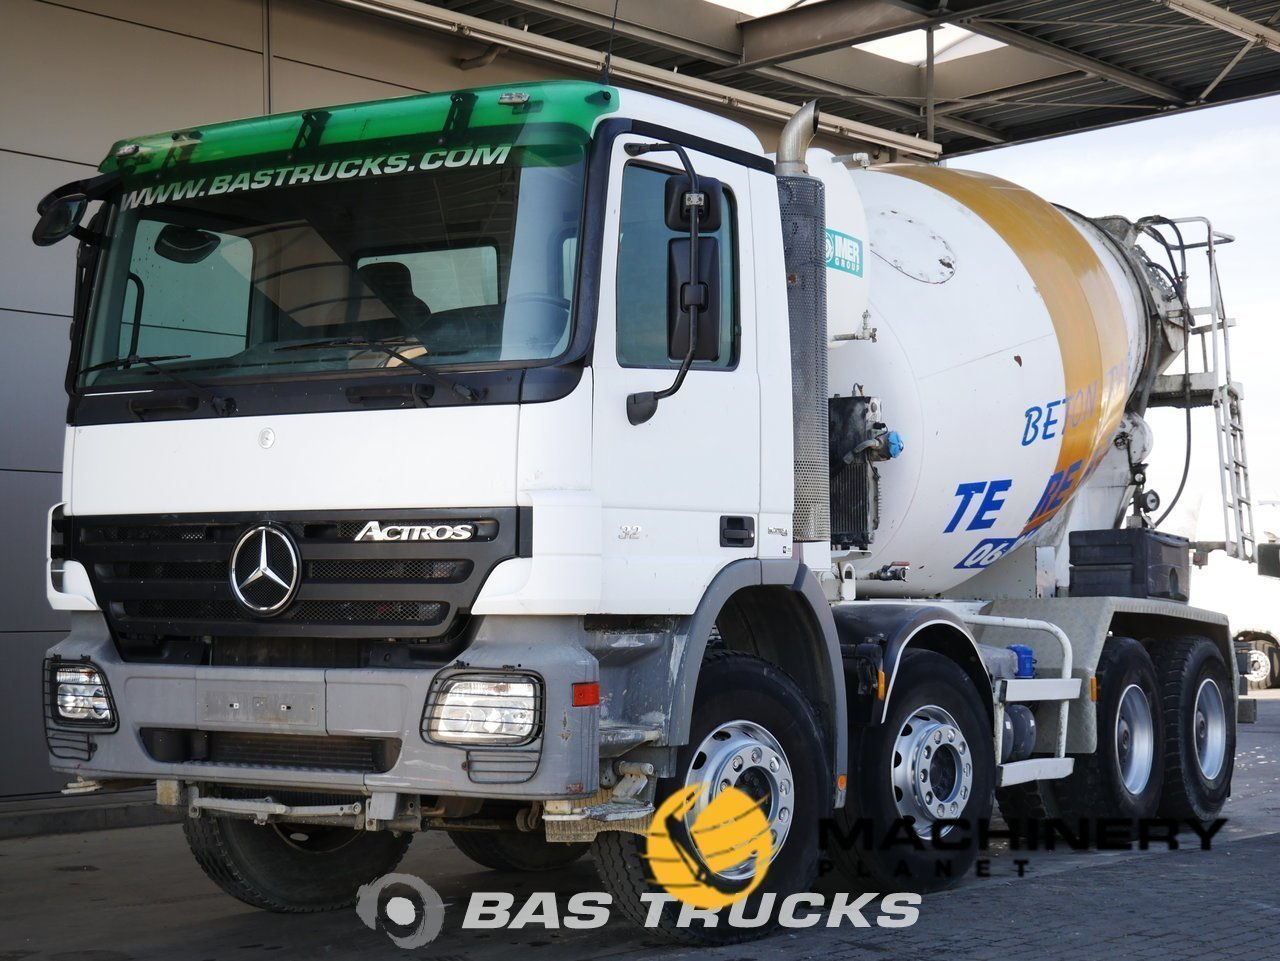 Used-Truck-Mercedes-Actros-3241-8X4-2009_146458_1-1553948877792_5c9f60cdc168a-1.jpg